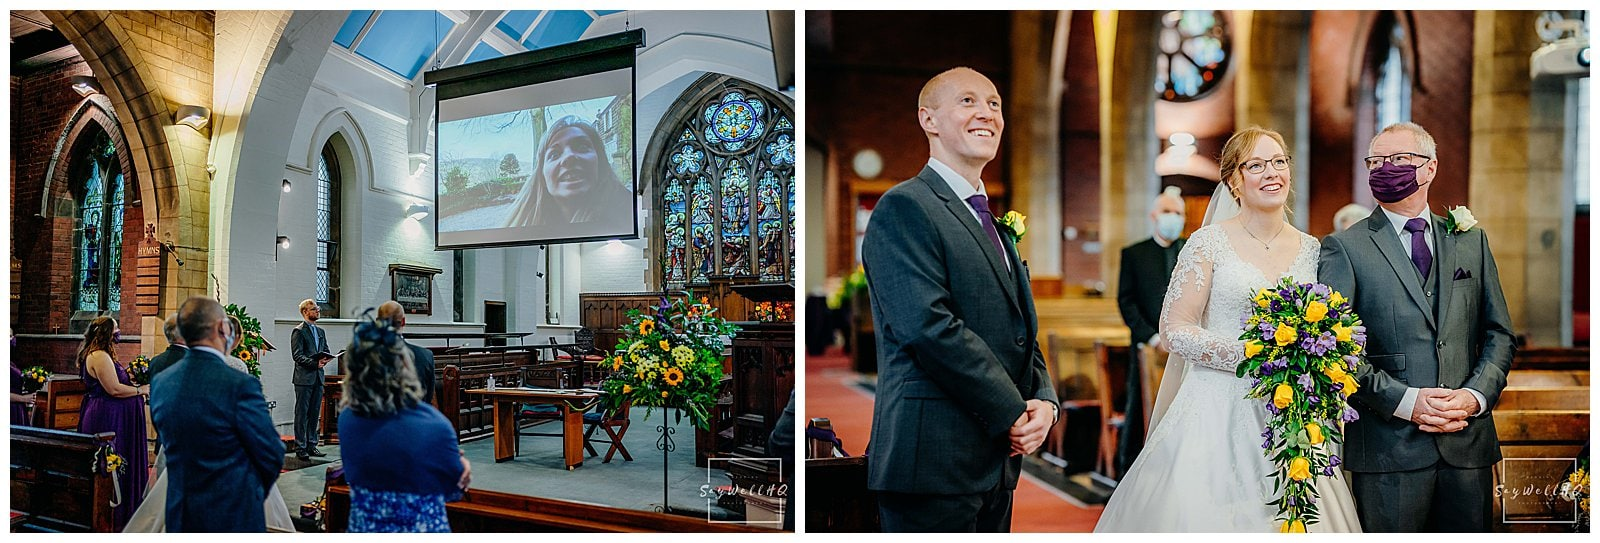 Bride and groom looking at old pictures of themselves being projected onto the big screen at their micro wedding at St Judes Church in Mapperley Nottingham